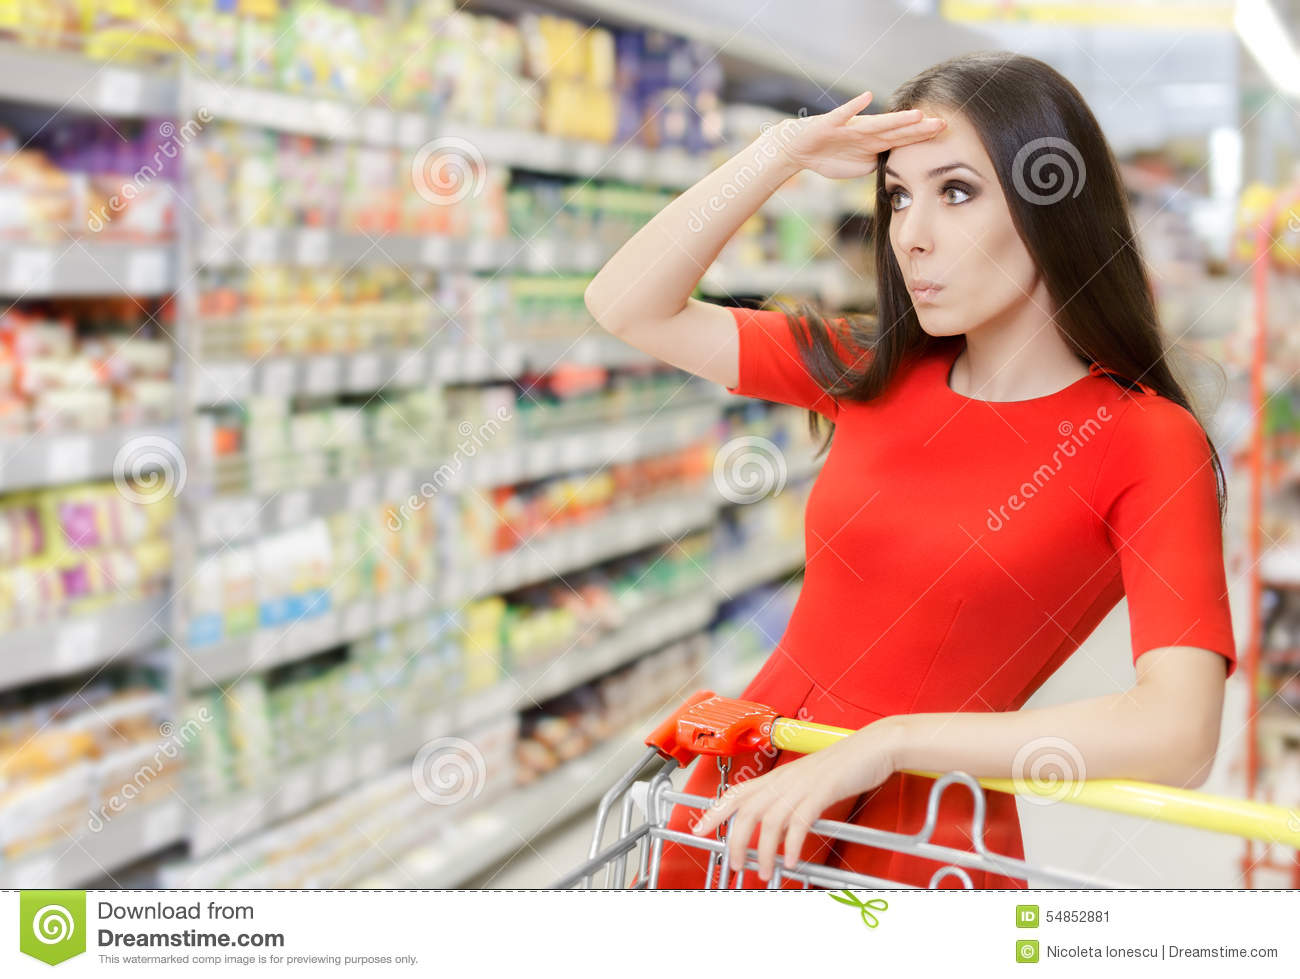 Curious Woman Shopping at The Supermarket